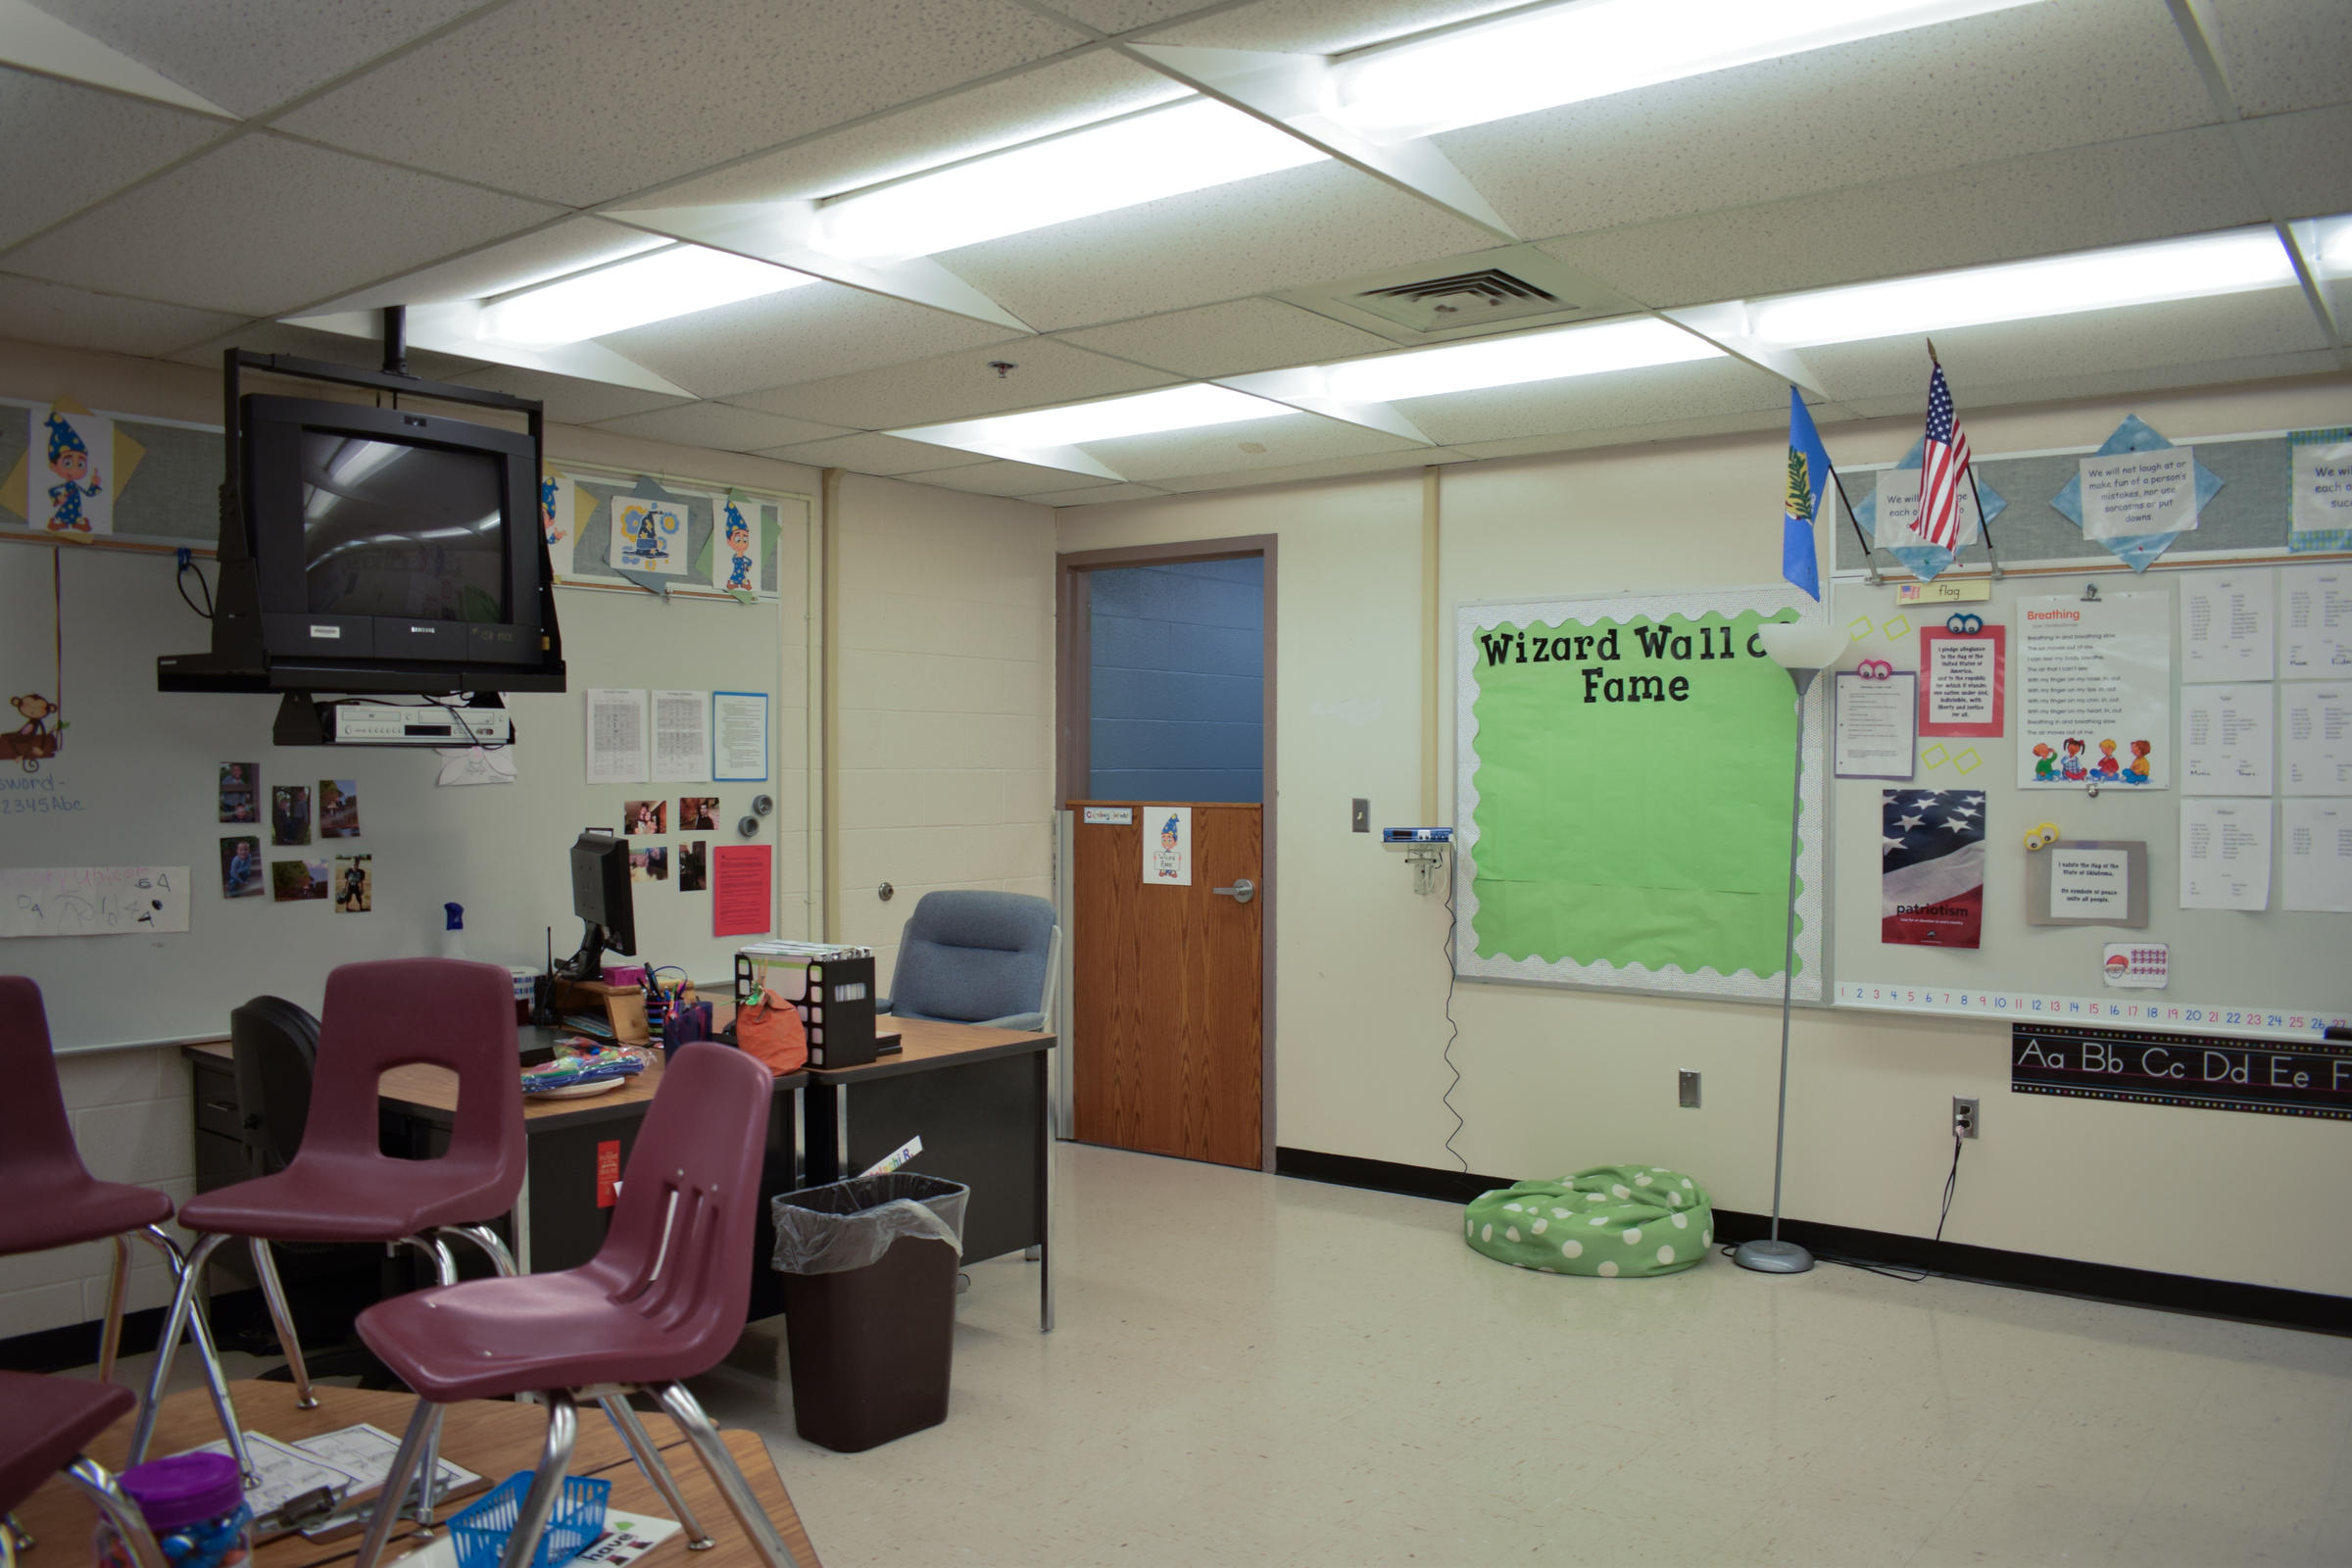 The Seclusion Room In This Mustang School Classroom Is At The Far Corner Of  The Classroom.